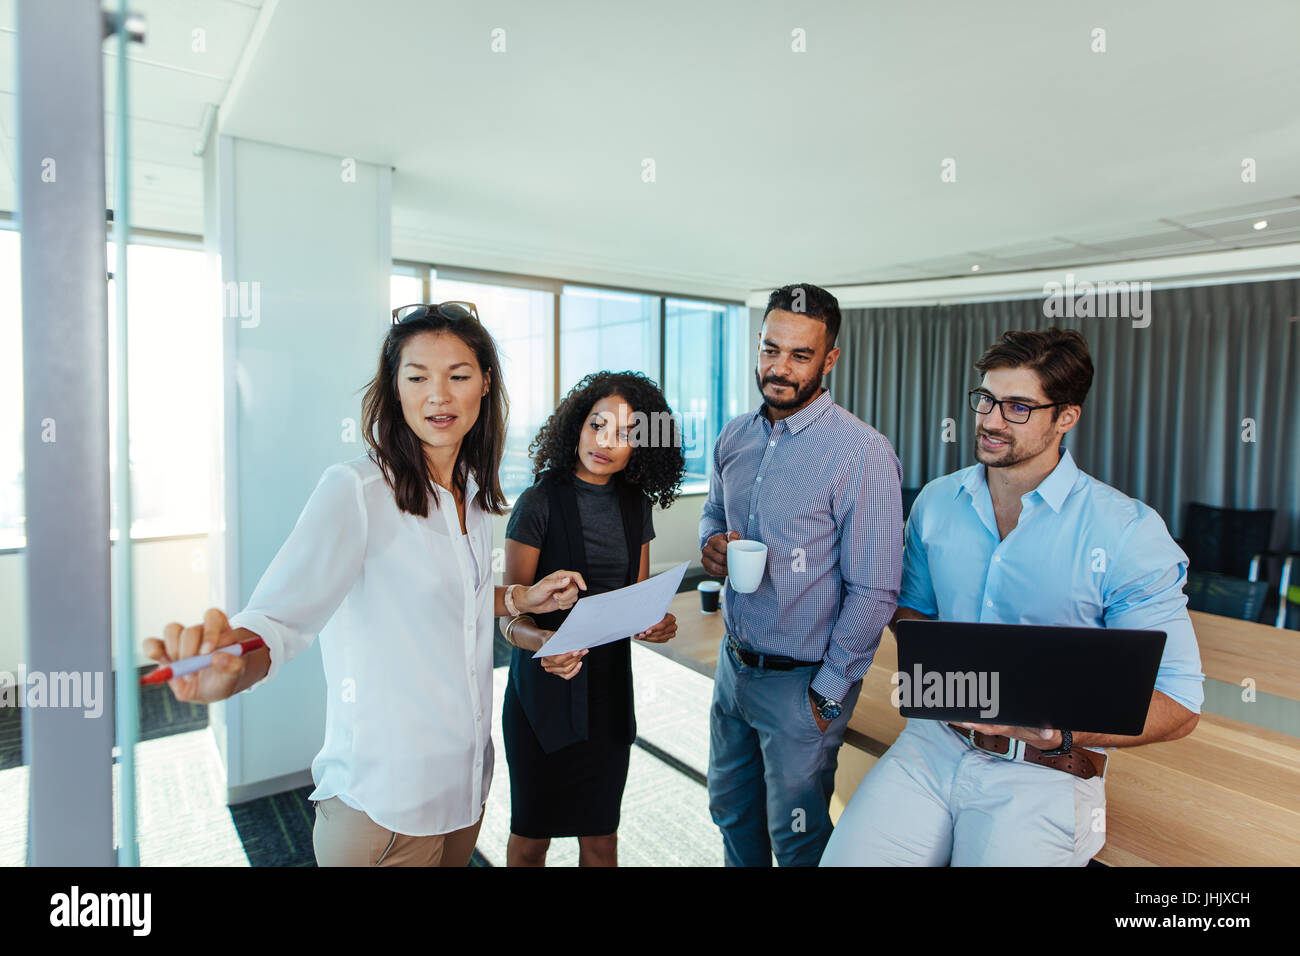 Business investors discussing a point in boardroom. Business woman pointing towards the board while making a business - Stock Image